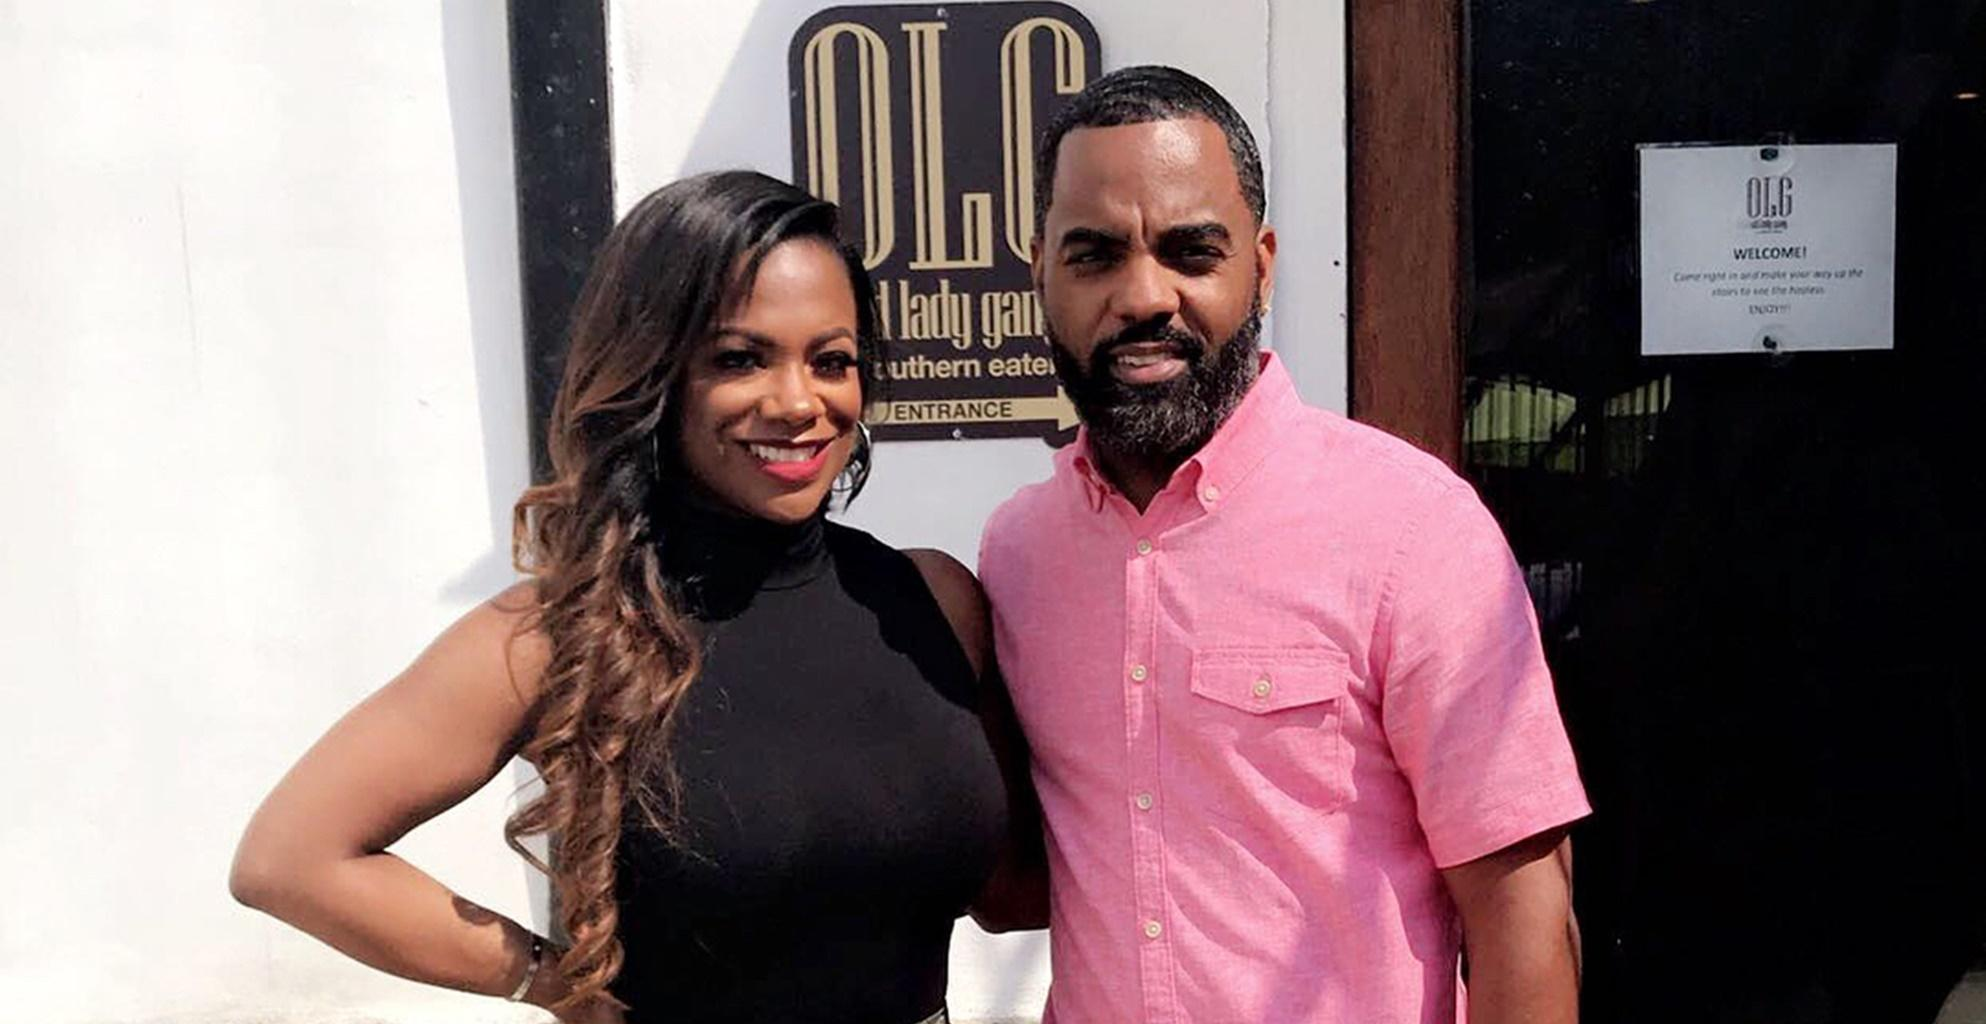 Kandi Burruss And Todd Tucker Grace The Cover Of Upscale Magazine - The Power Couple Looks Great